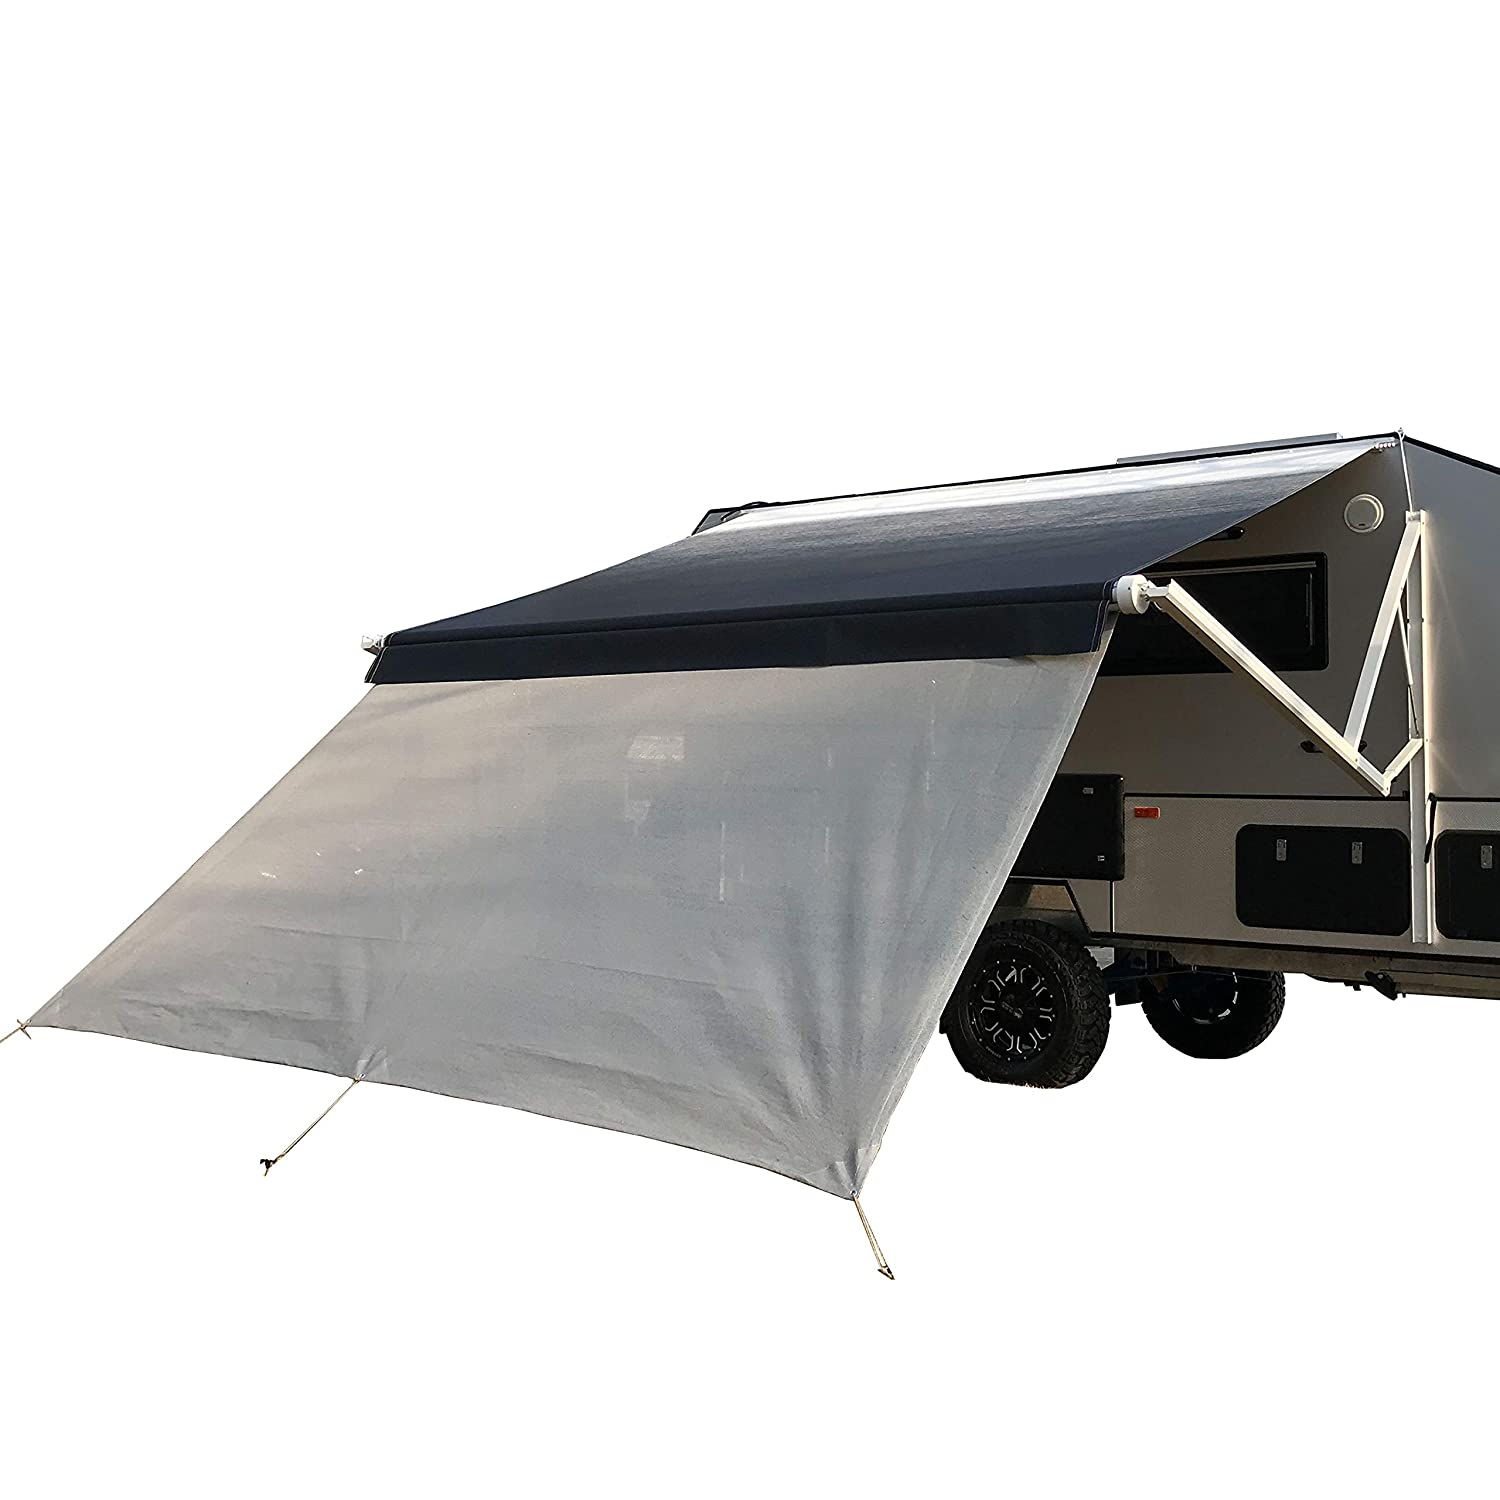 ALEKO RVSSC16X7 RV Deluxe Awning Sun Screen 4.8 x 1.8 Meters 16 x 6 Feet Grey Mesh